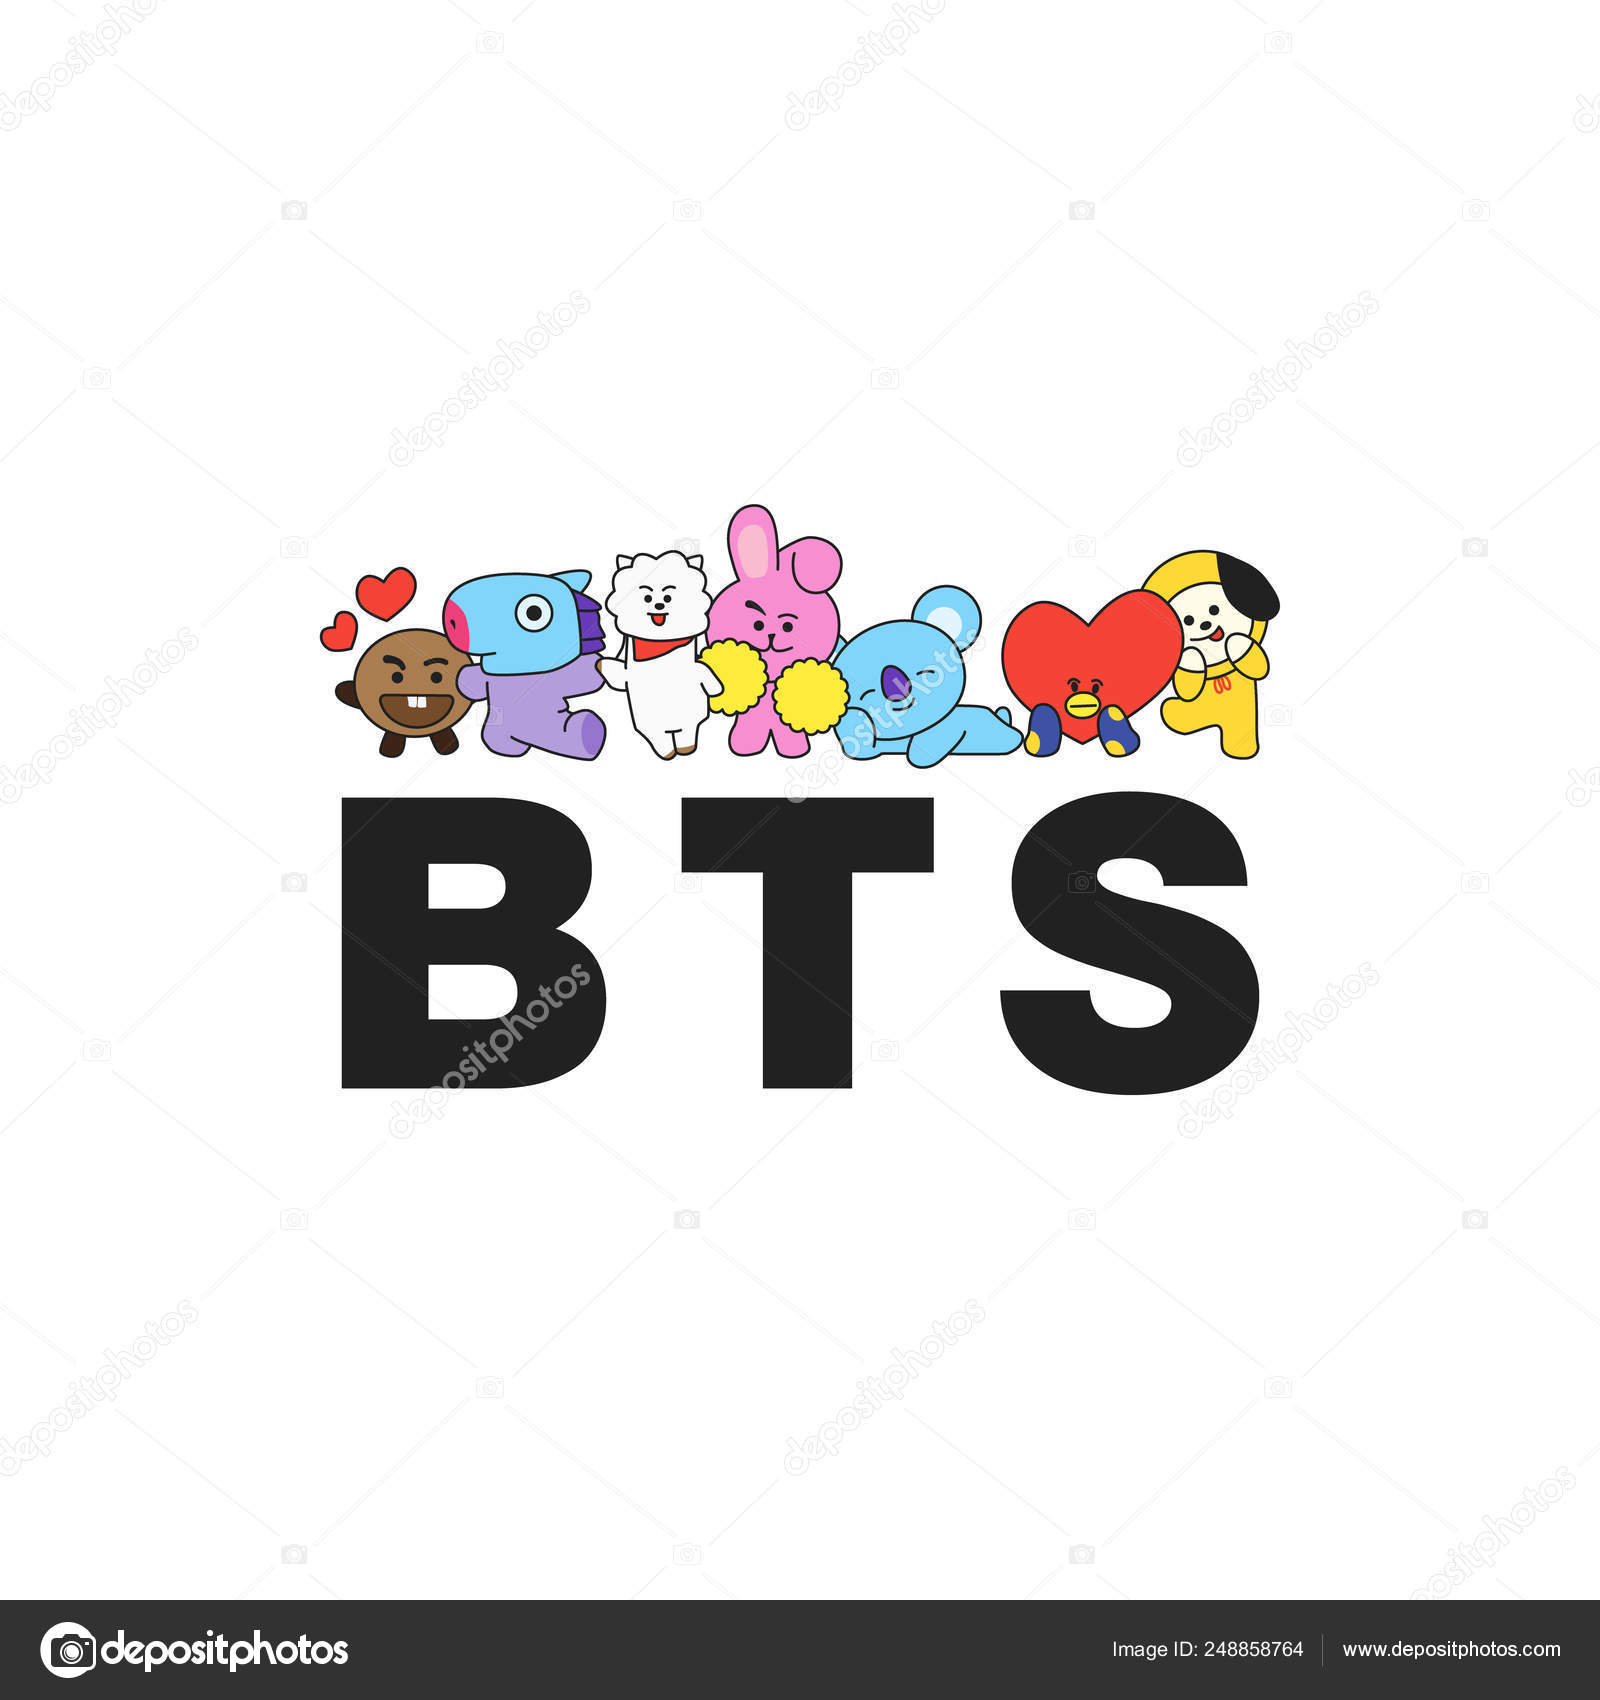 depositphotos 248858764 stock illustration bts south korean boy band